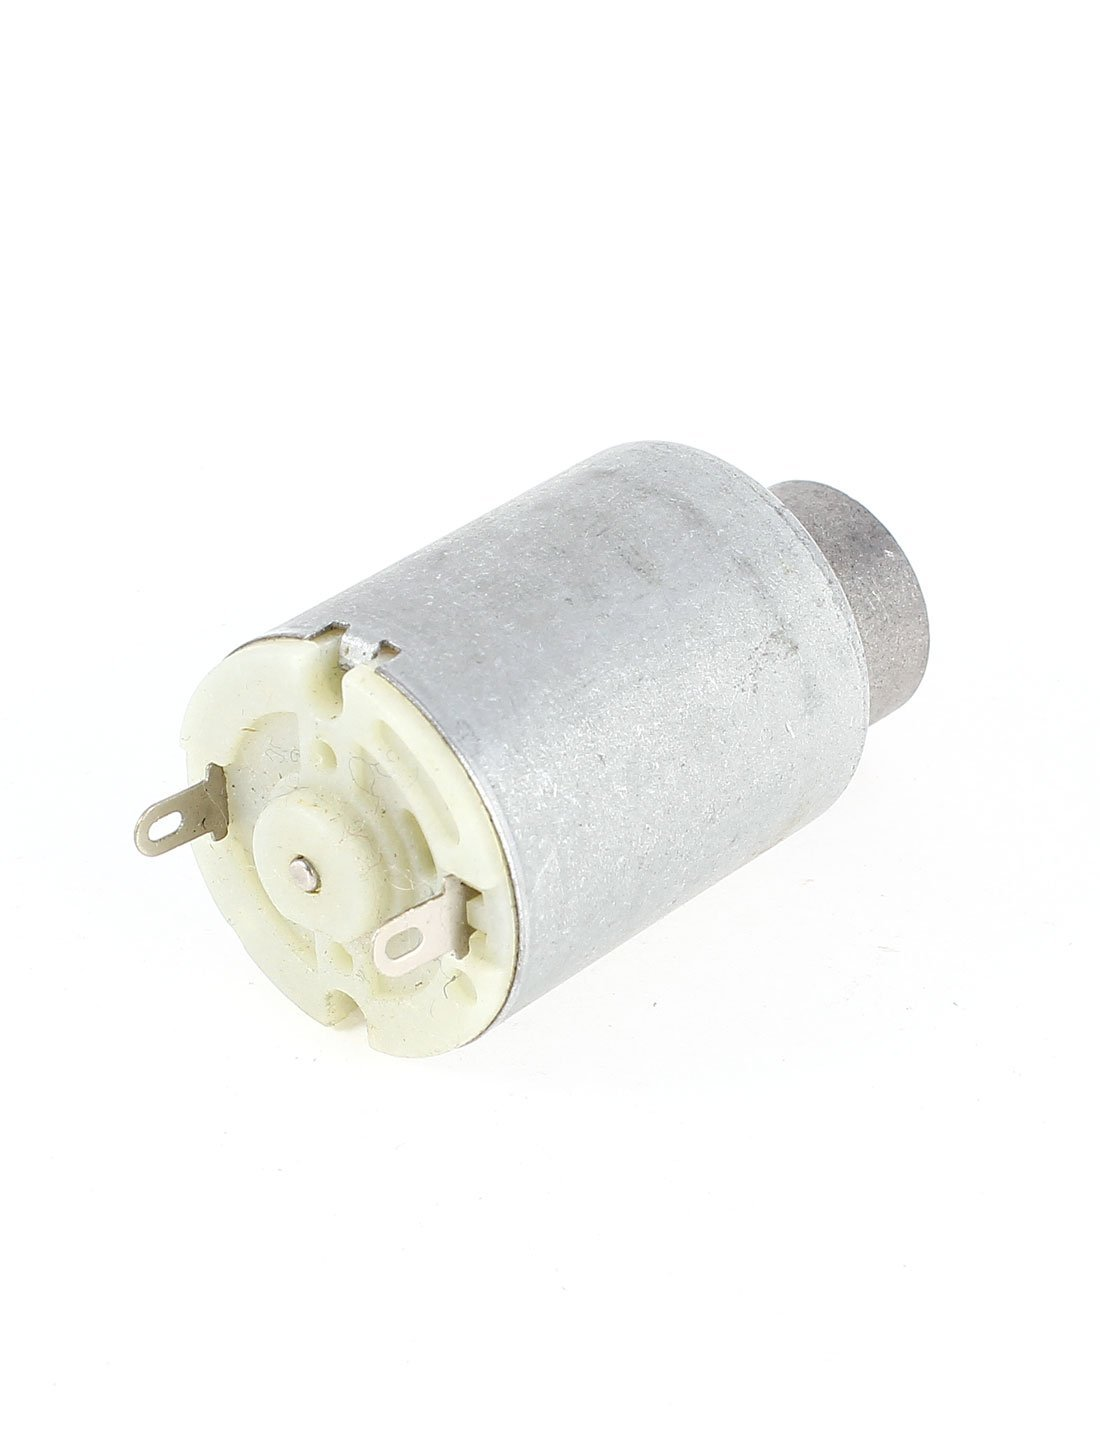 1inch Mini Vibration Vibrating Electric Motor DC 3-6V 12000RPM DealMux